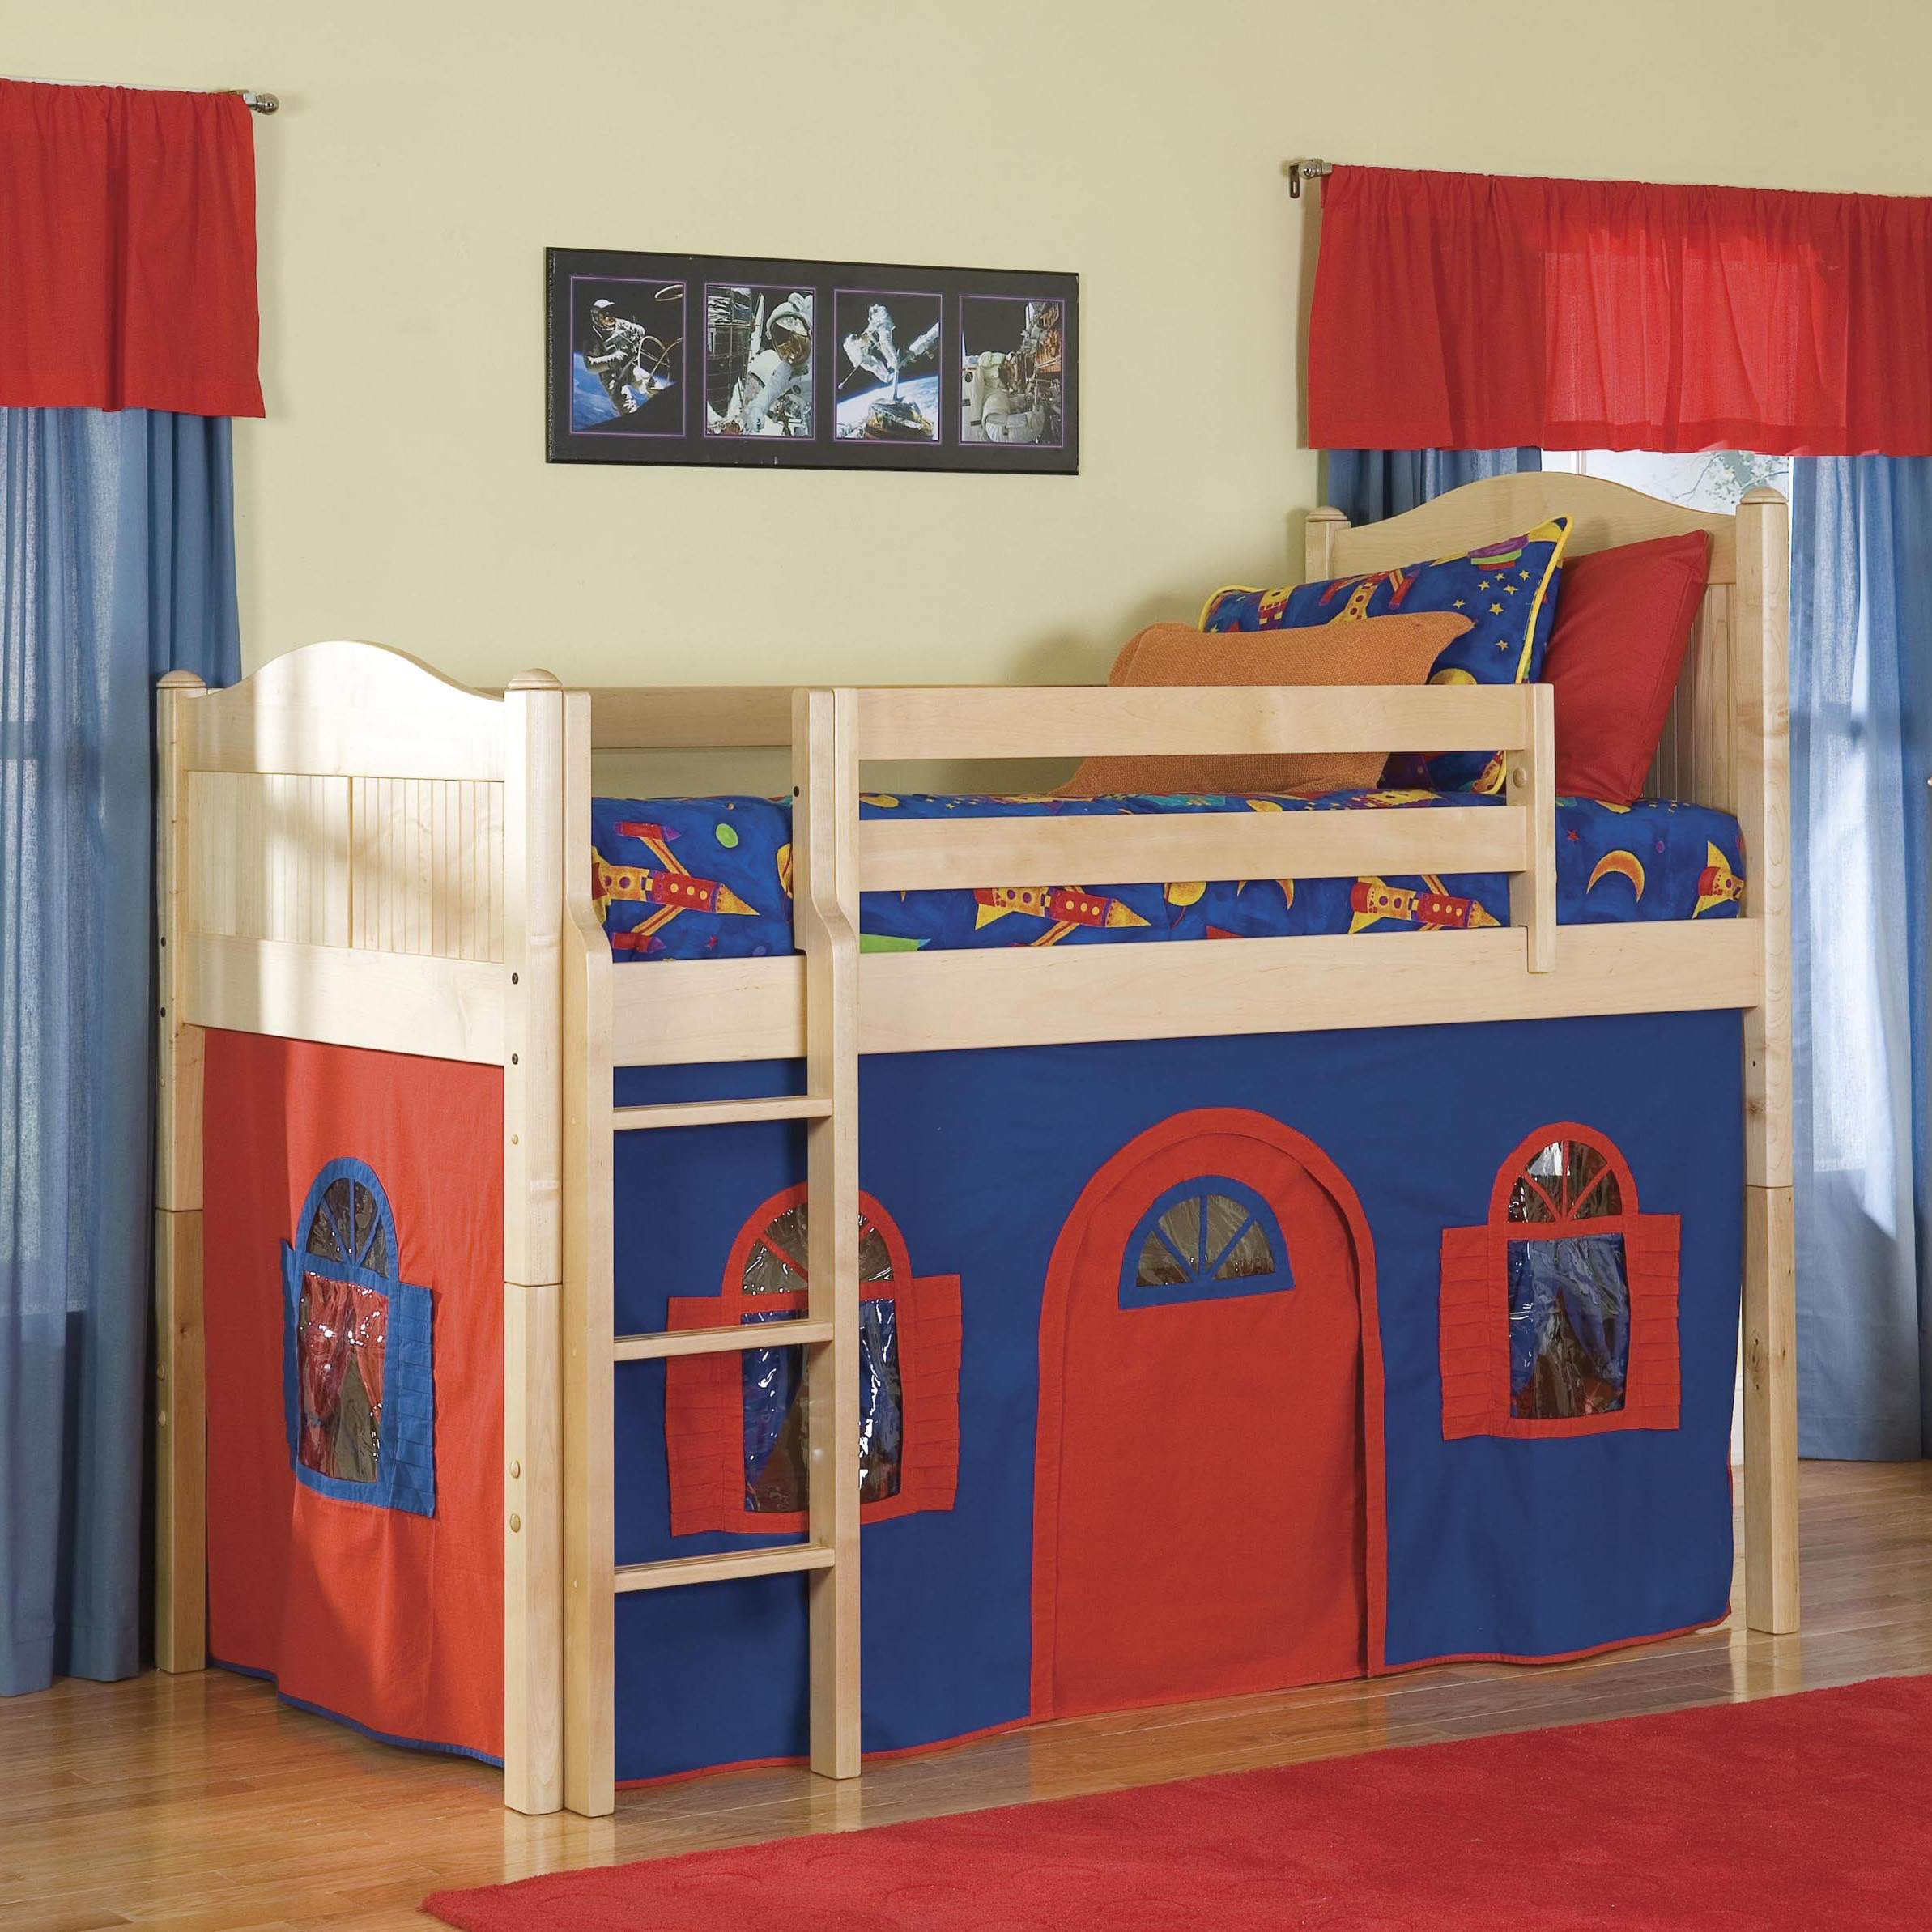 Bunk Bed Curtains | Bunk Bed Attachments | Tent for Loft Bed